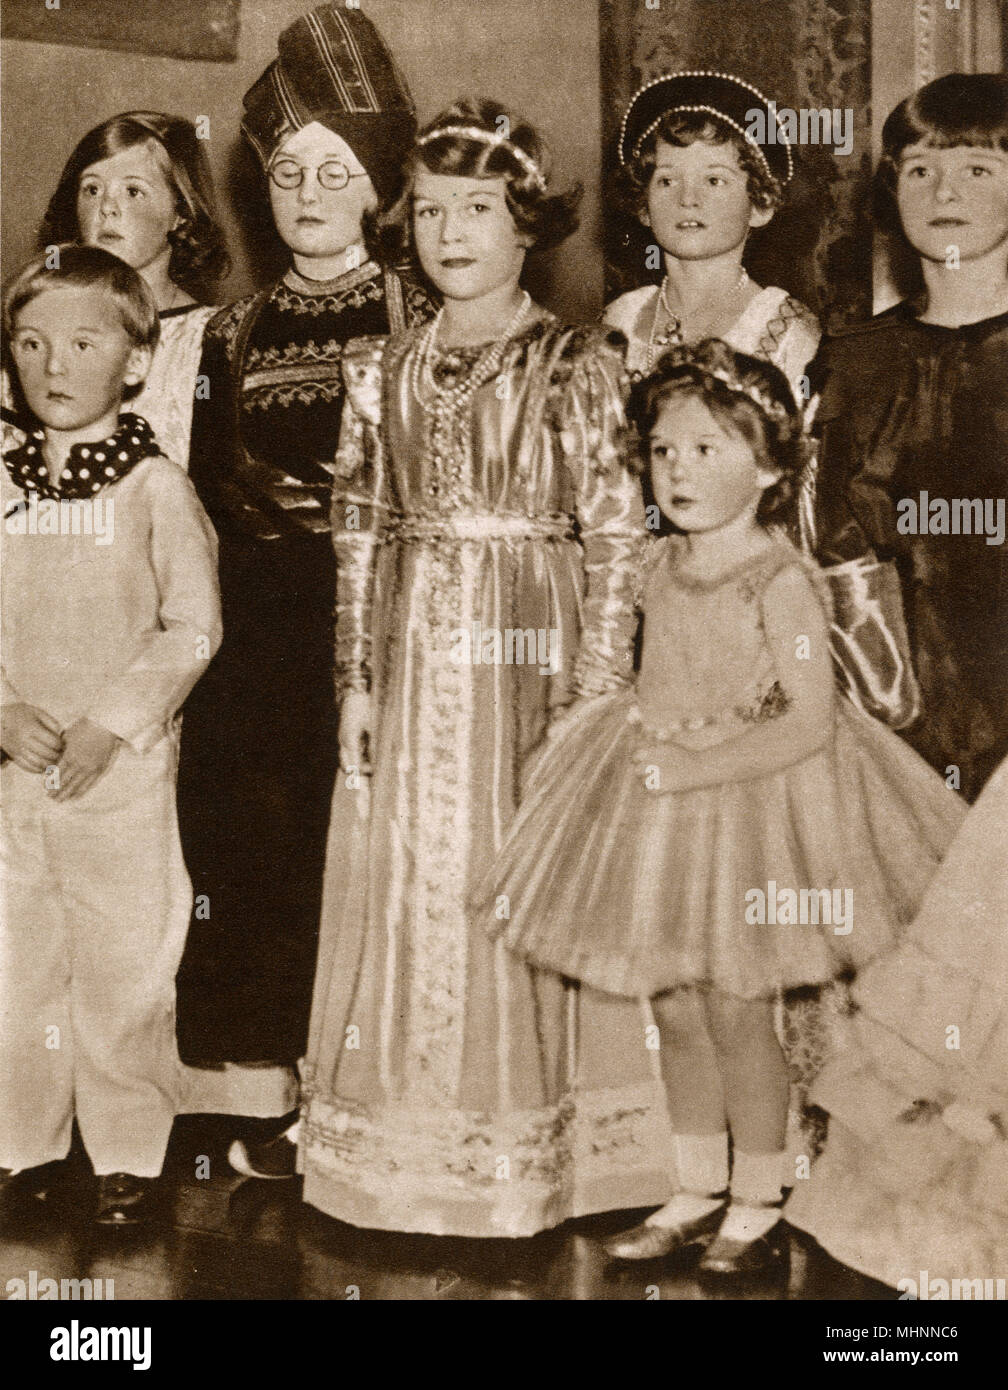 Princess Elizabeth (later Queen Elizabeth II 1926-) and Princess Margaret (1930-2002) pictured at a Fancy Dress Dance given by Viscountess Astor at her house in St. James's Square. Princess Elizabeth dressed in a shimmering Tudor gown is holding the hand of her younger sister, who is dressed as a fairy.     Date: 1934 - Stock Image